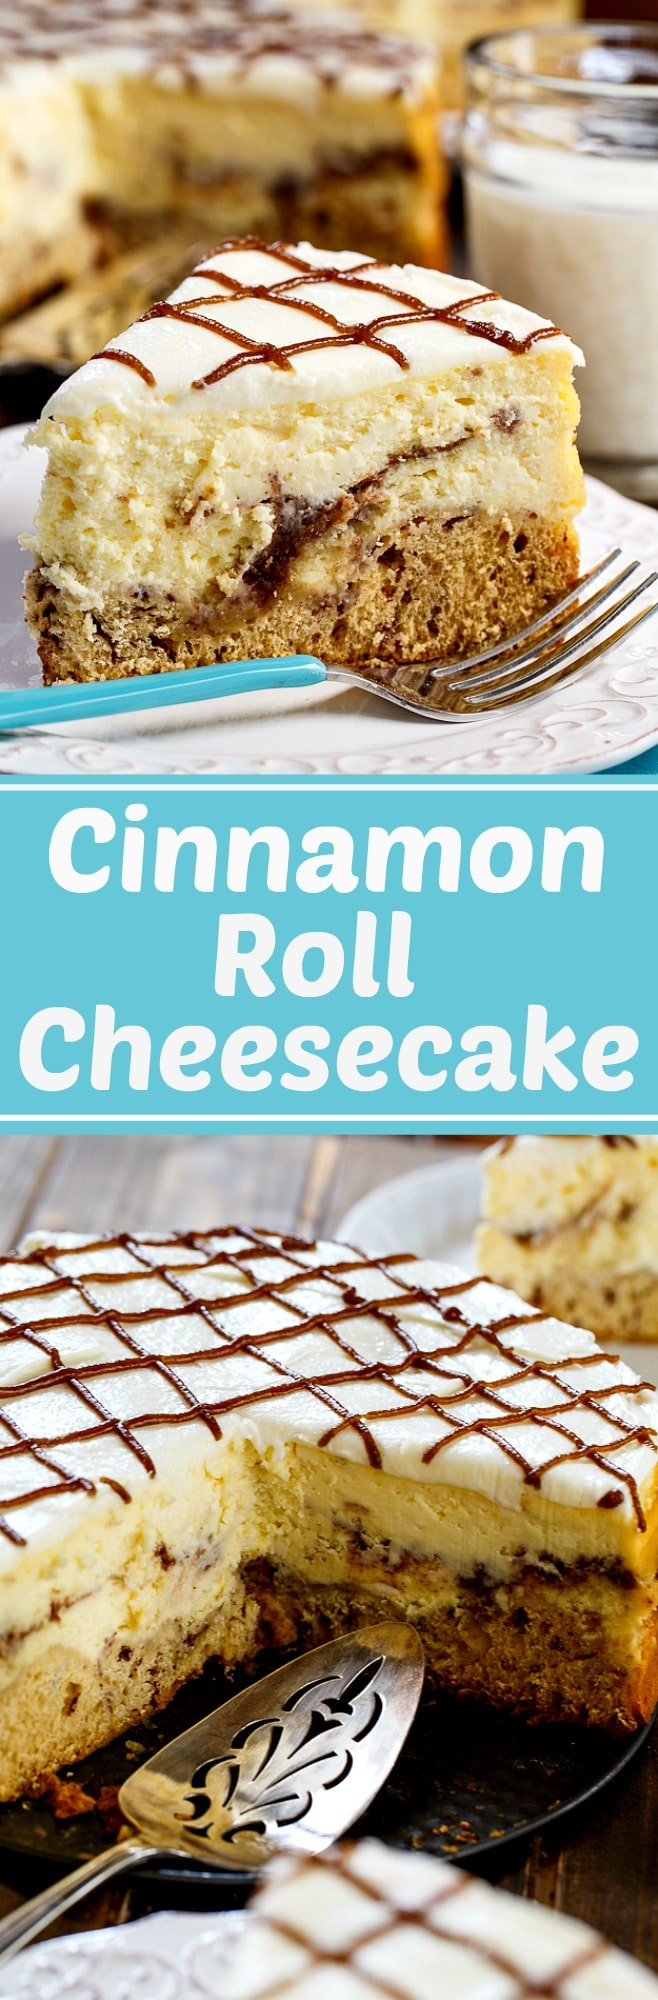 Cinnamon Roll CHeesecake with a crust made out of cinnamon rolls.